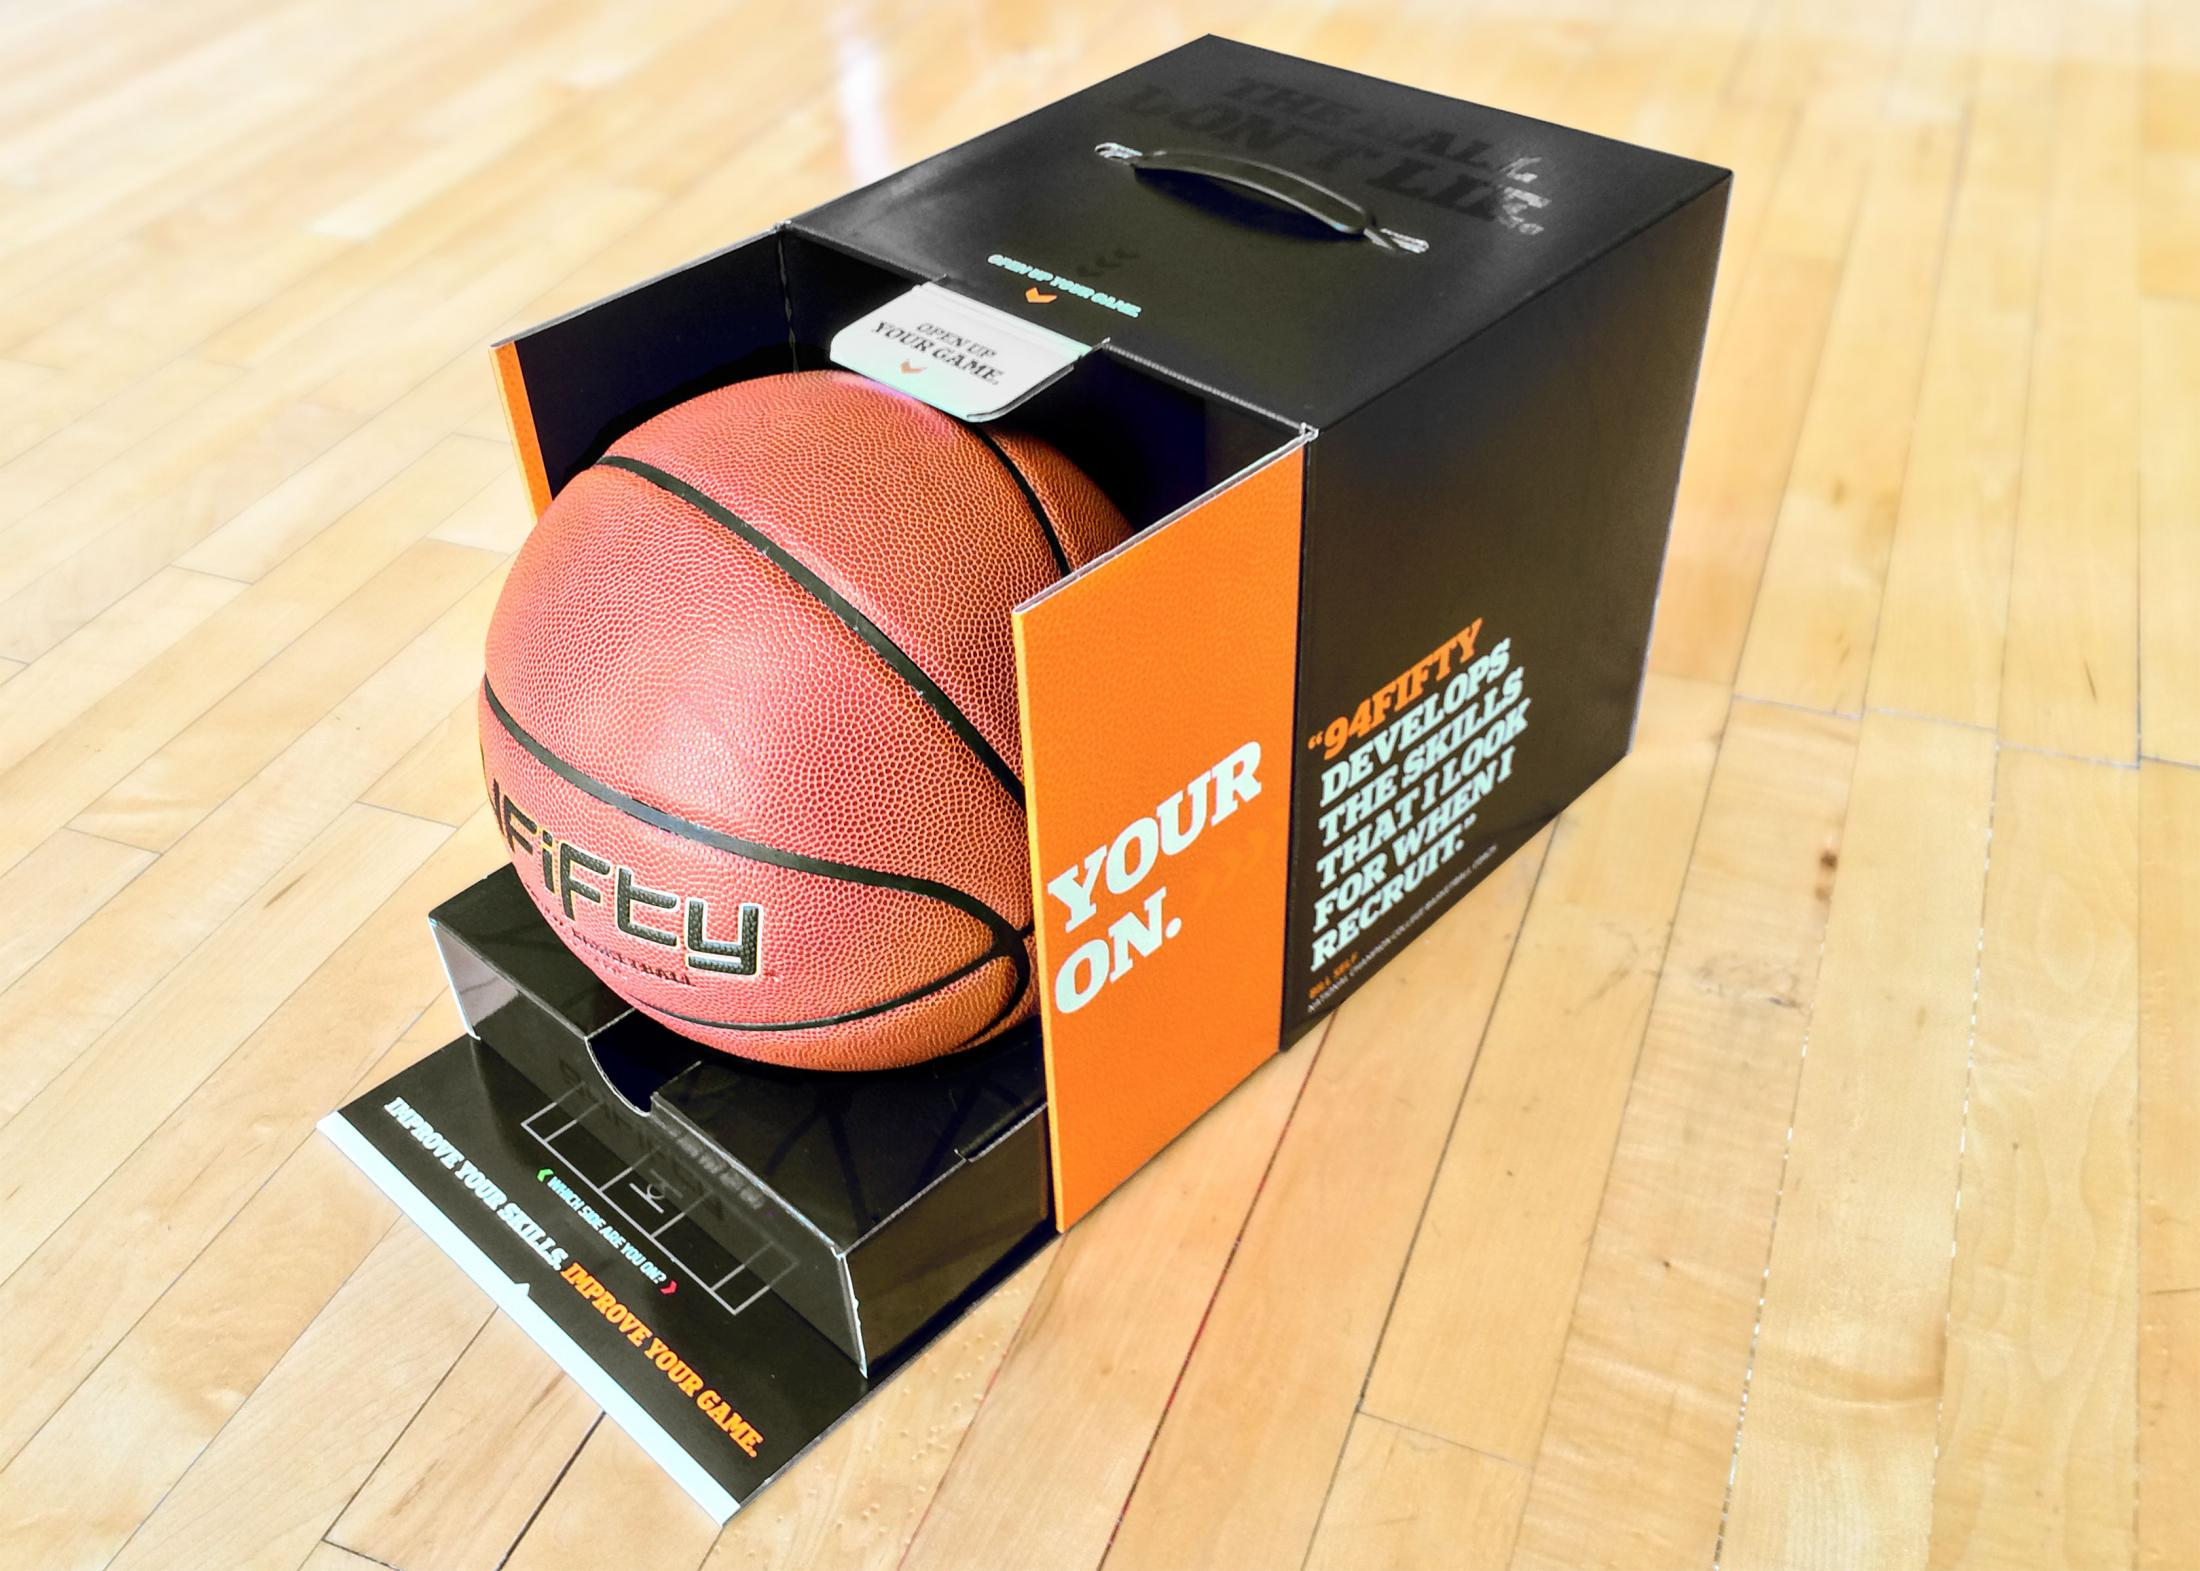 Thumbnail for 94Fifty Smart Sensor Basketball Packaging Experience